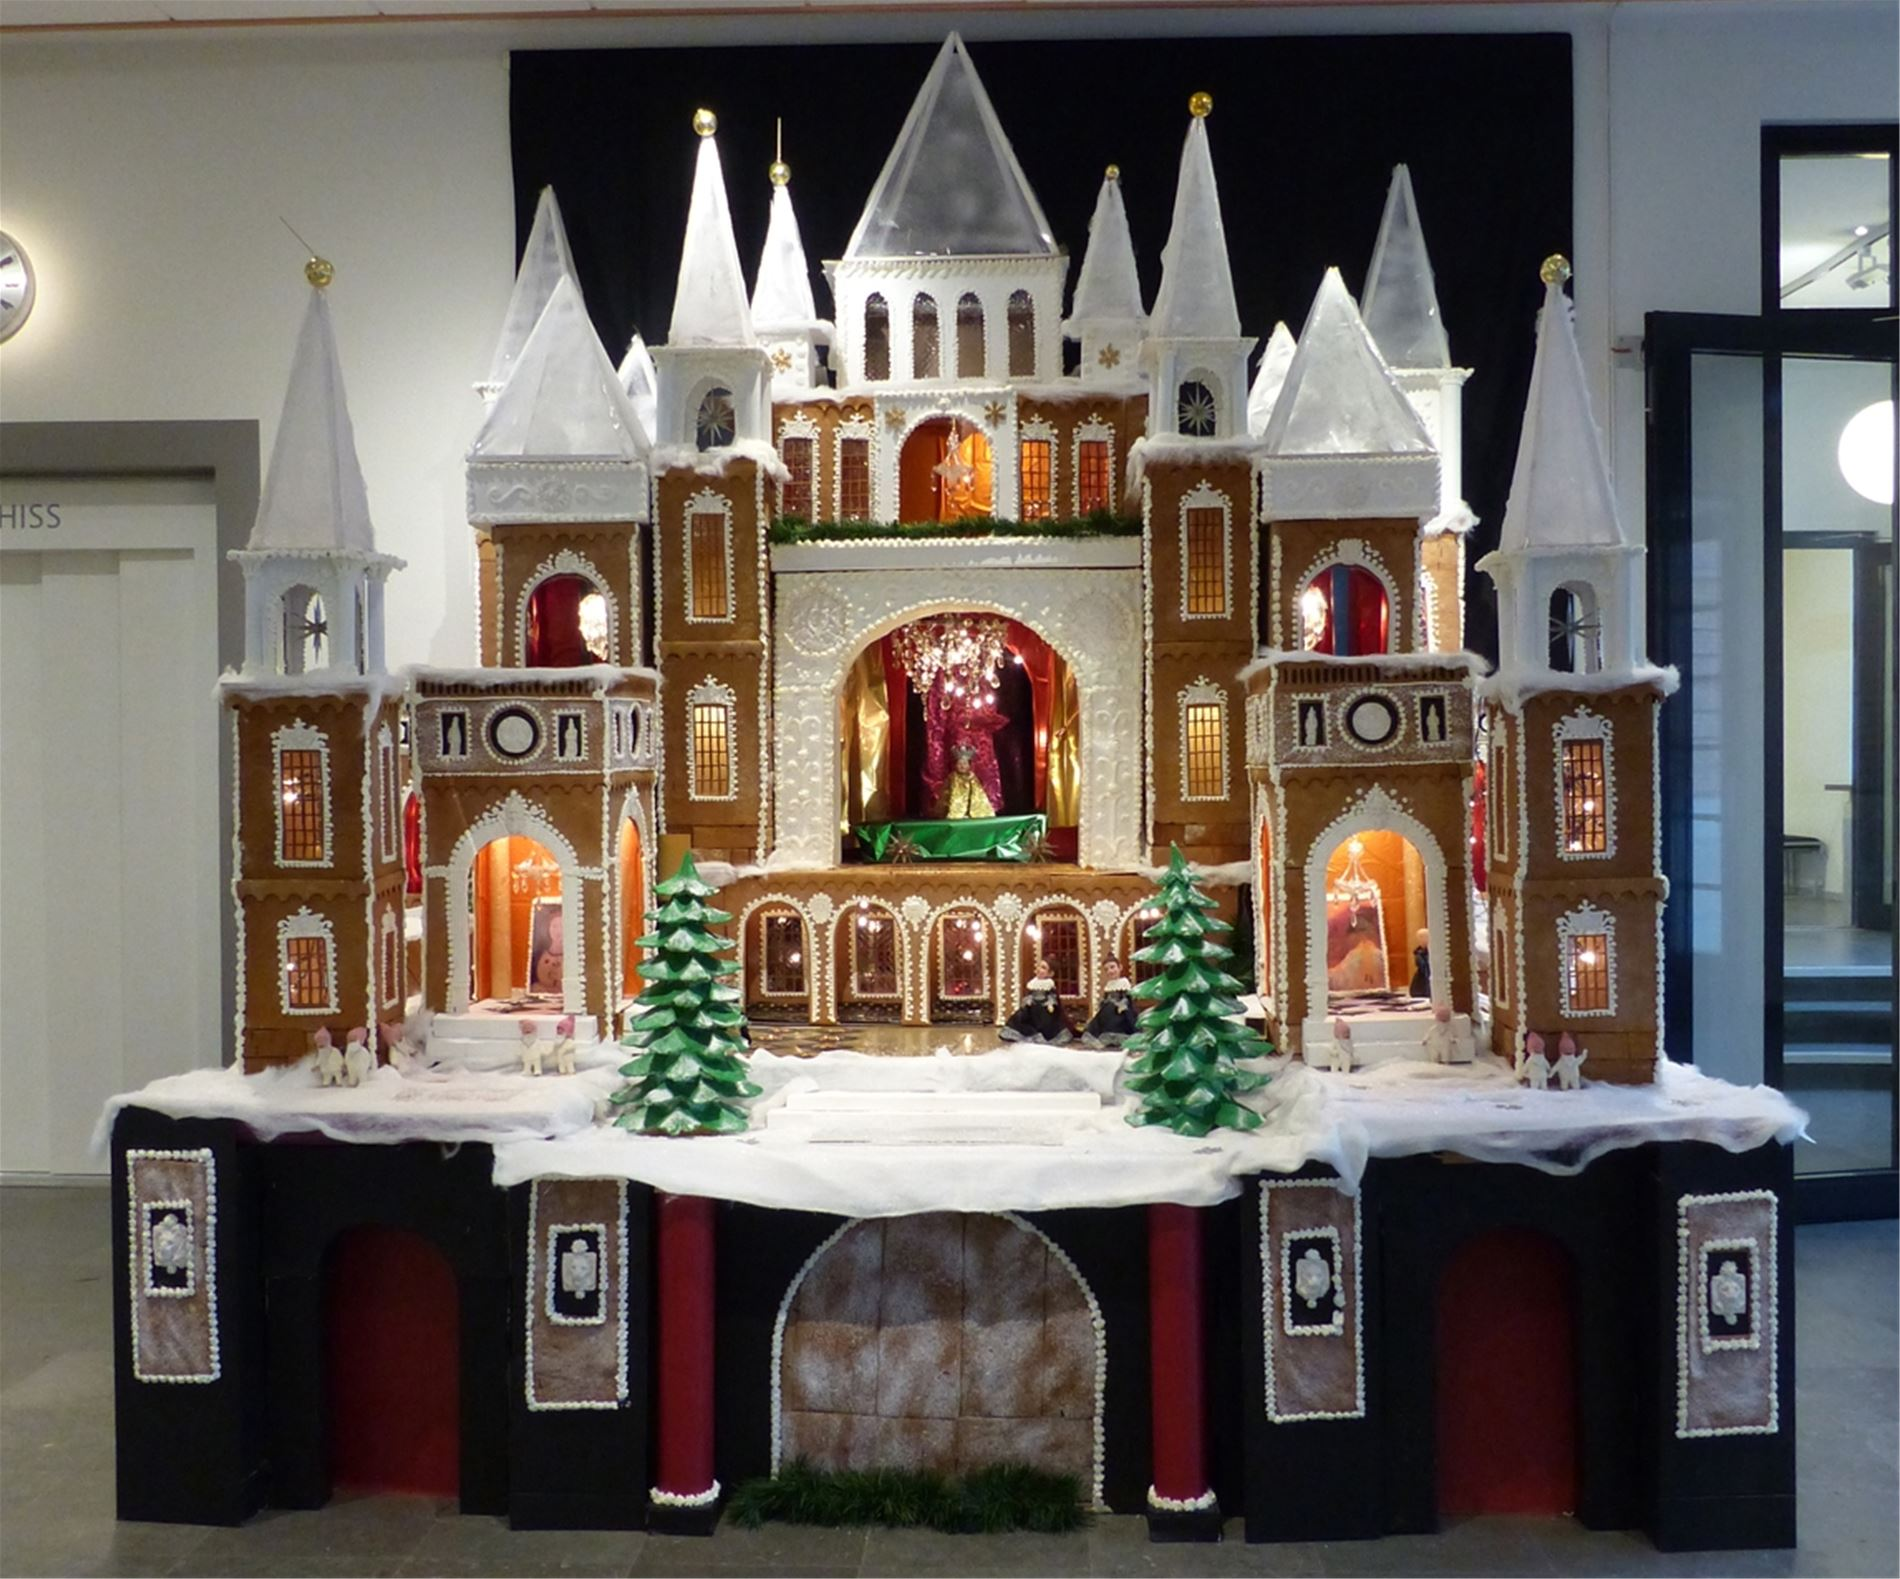 The County Museum's Grand Gingerbread House image